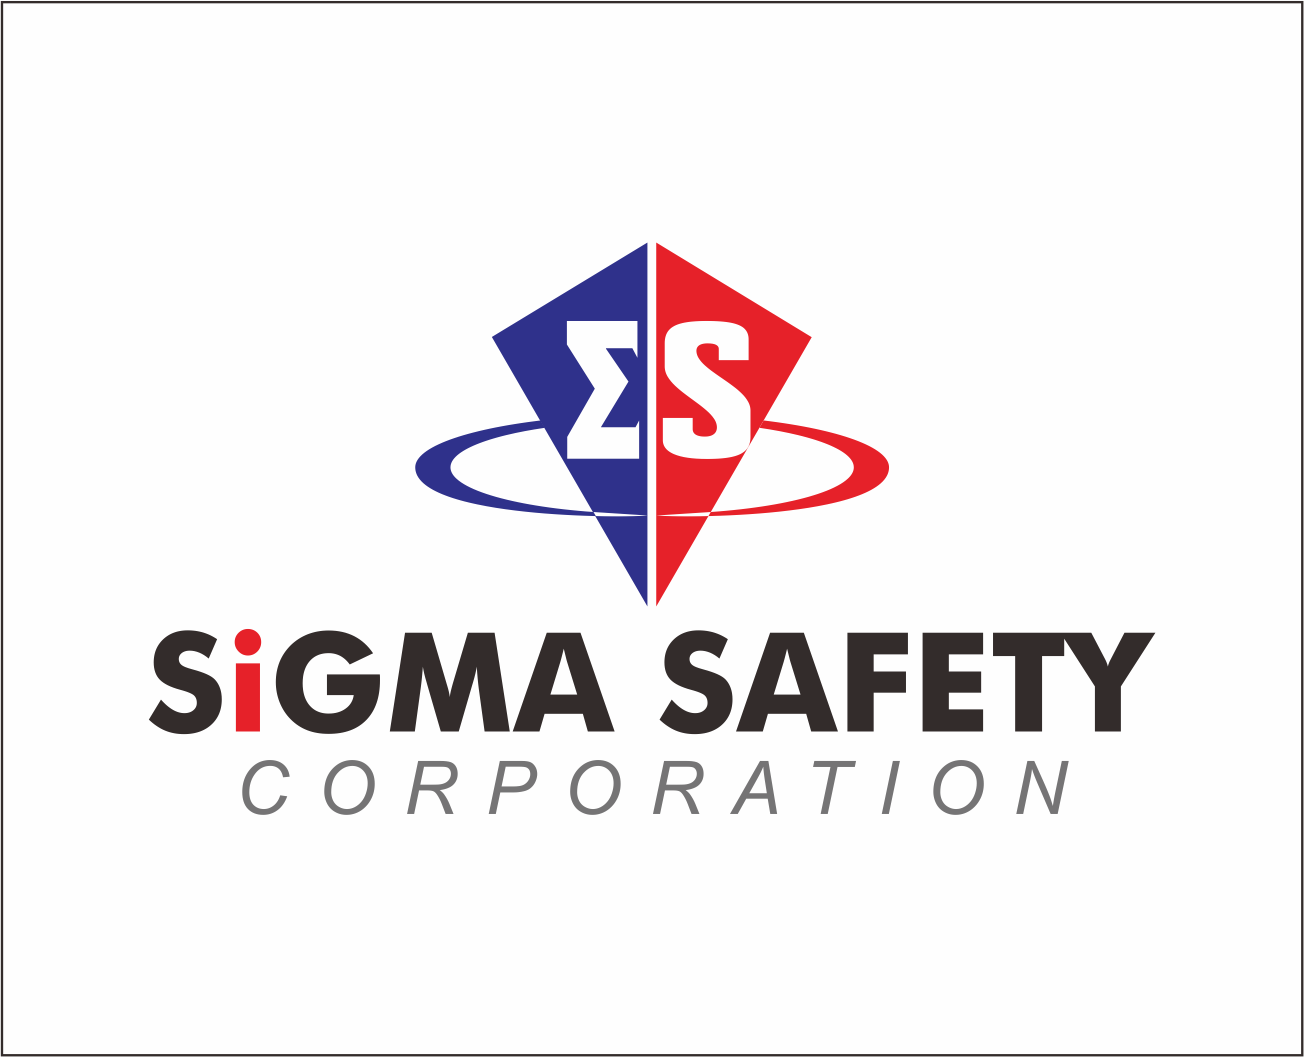 Logo Design by Armada Jamaluddin - Entry No. 242 in the Logo Design Contest Creative Logo Design for Sigma Safety Corporation.